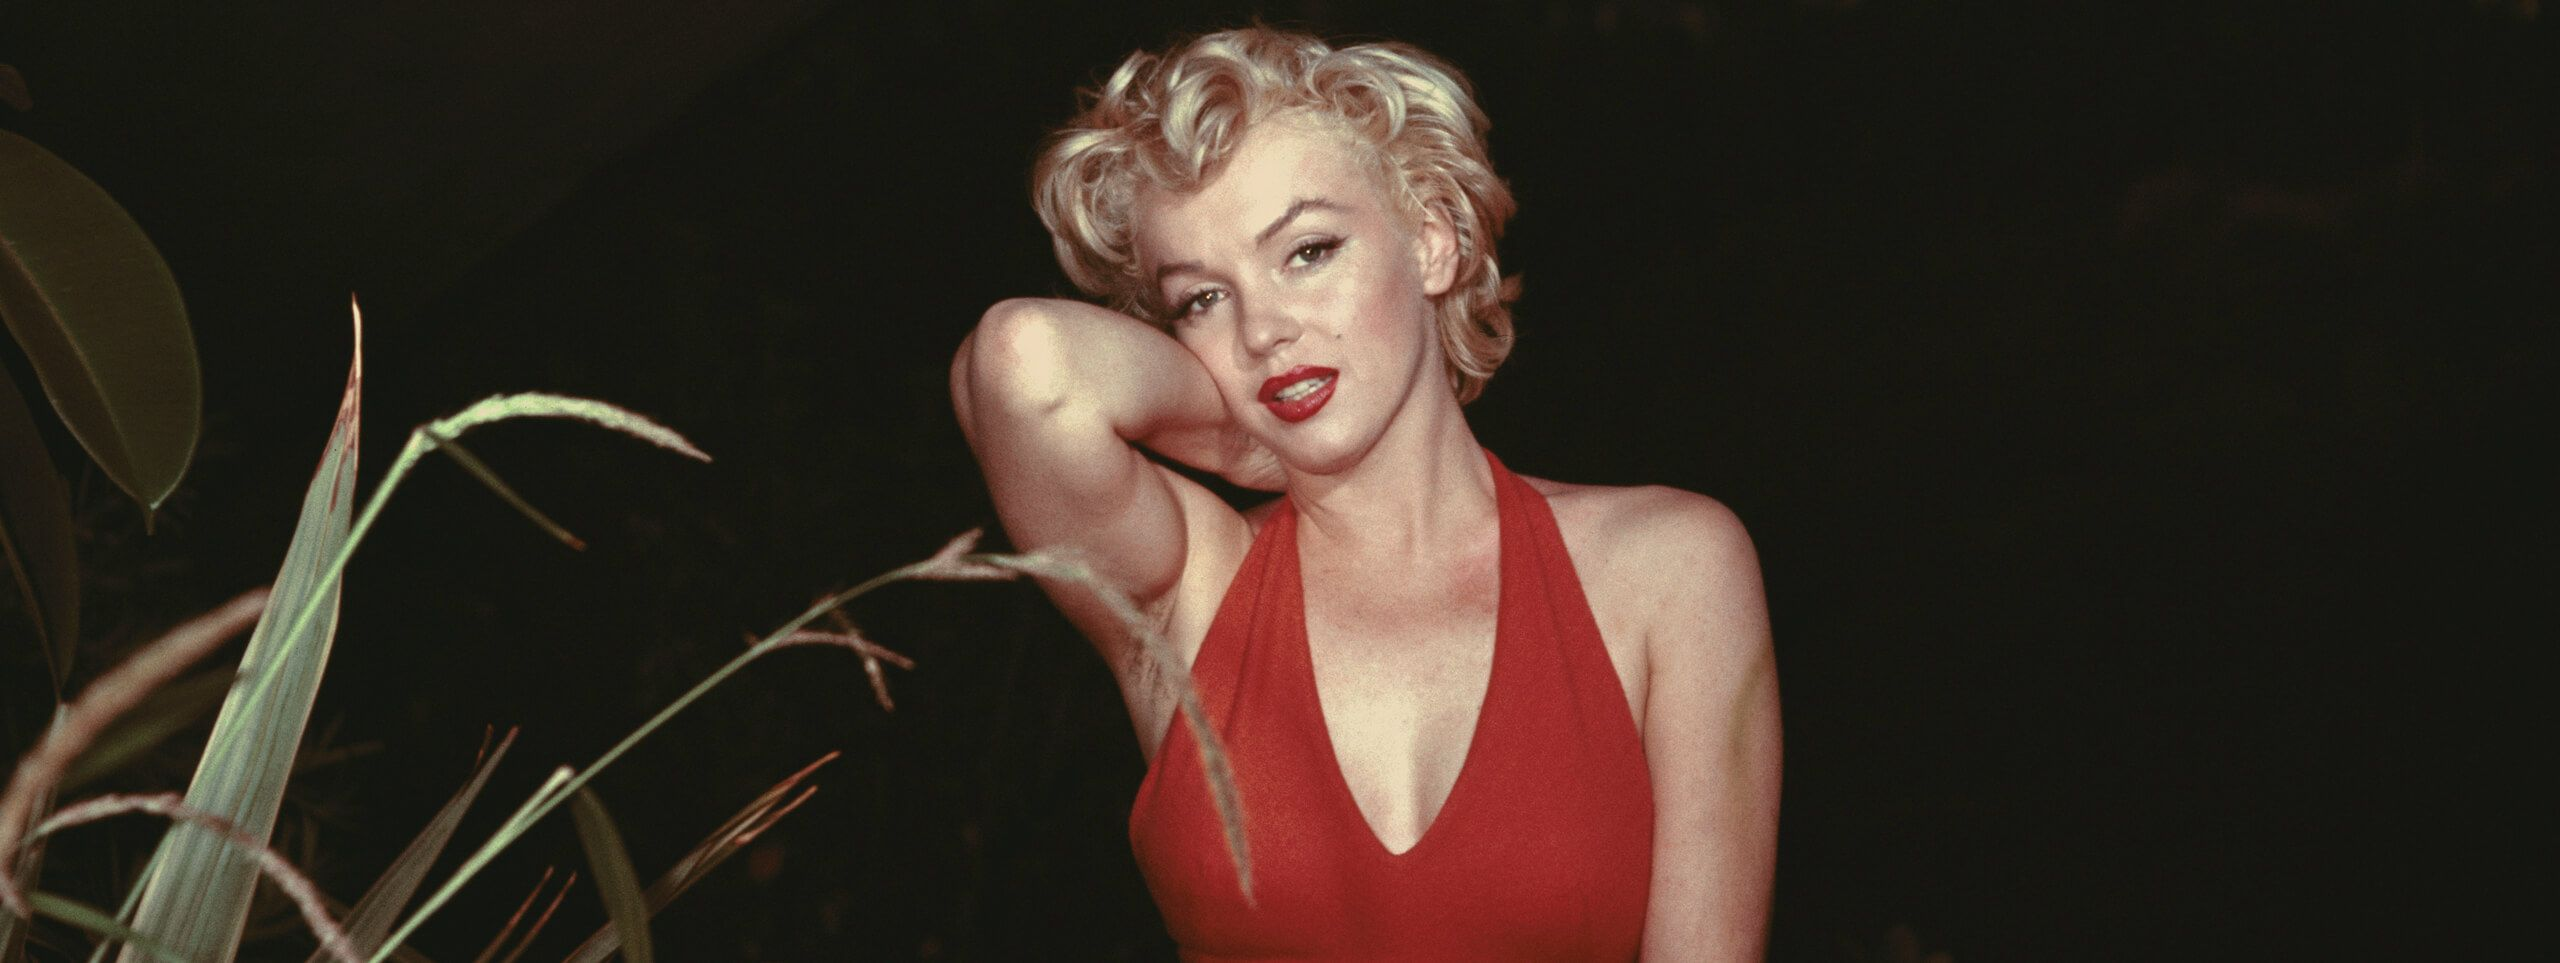 Marilyn Monroe with 1950s hairstyle